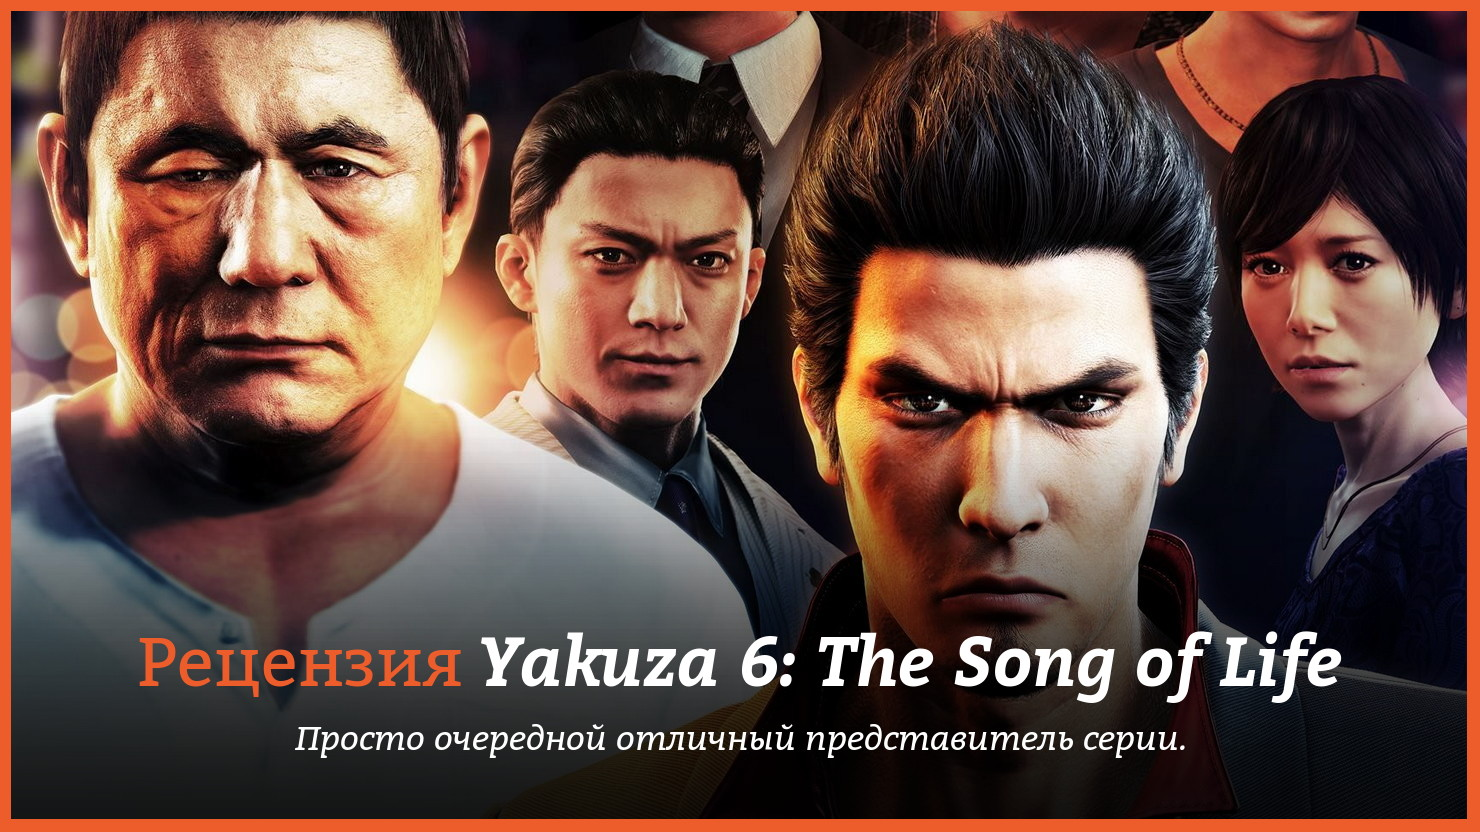 yakuza6_splash_5603.jpg